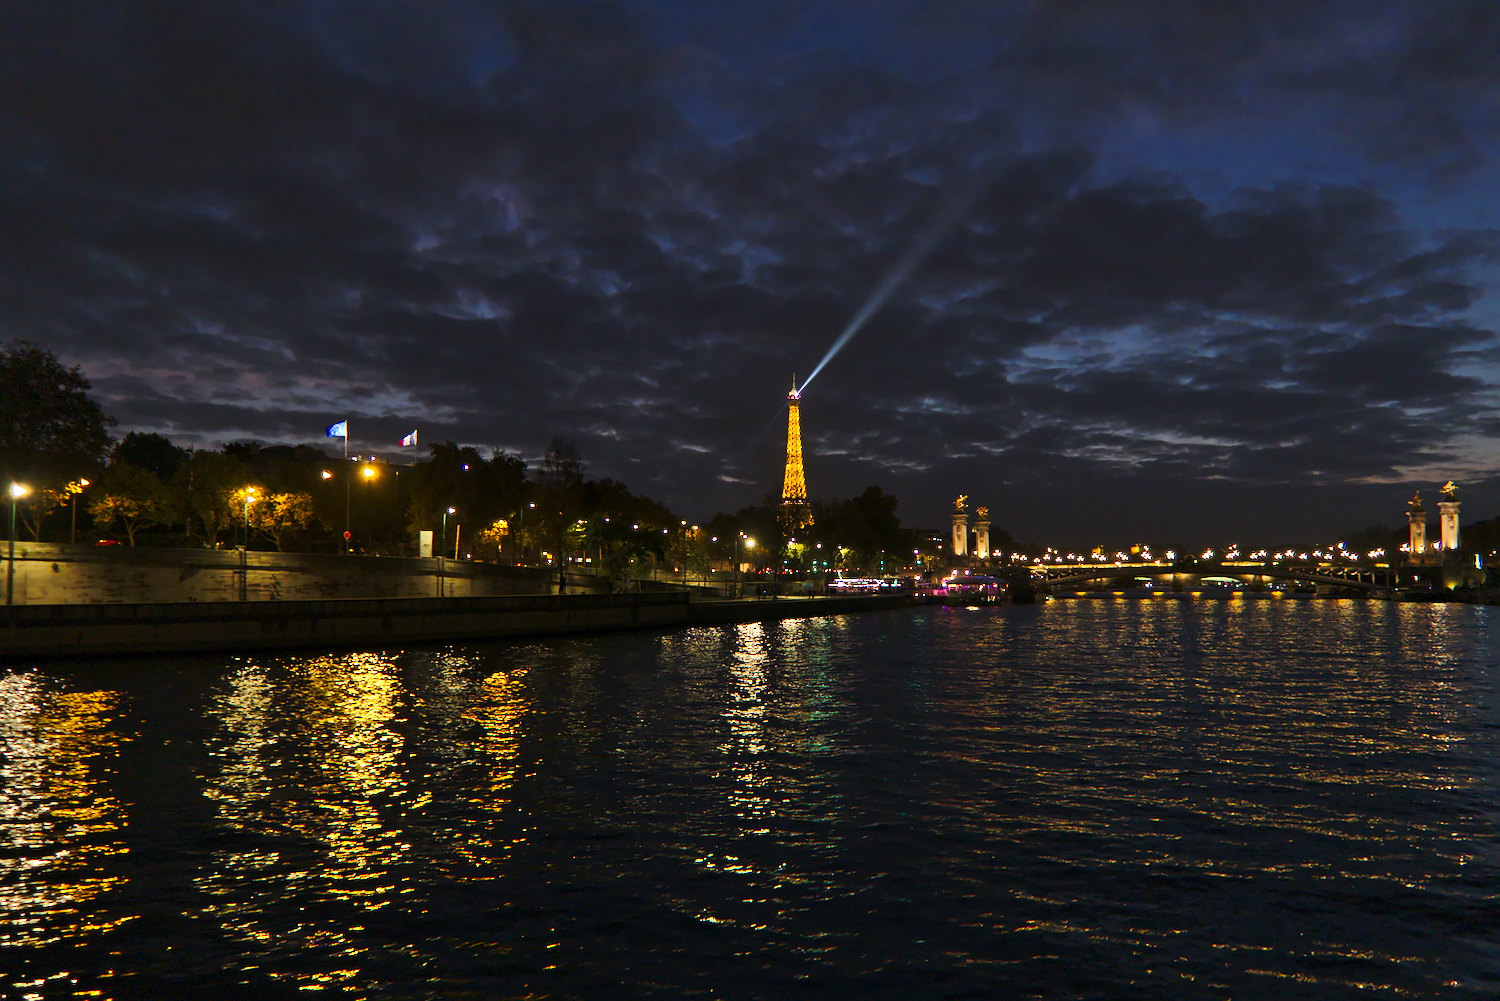 Eiffel Tower from the river at night